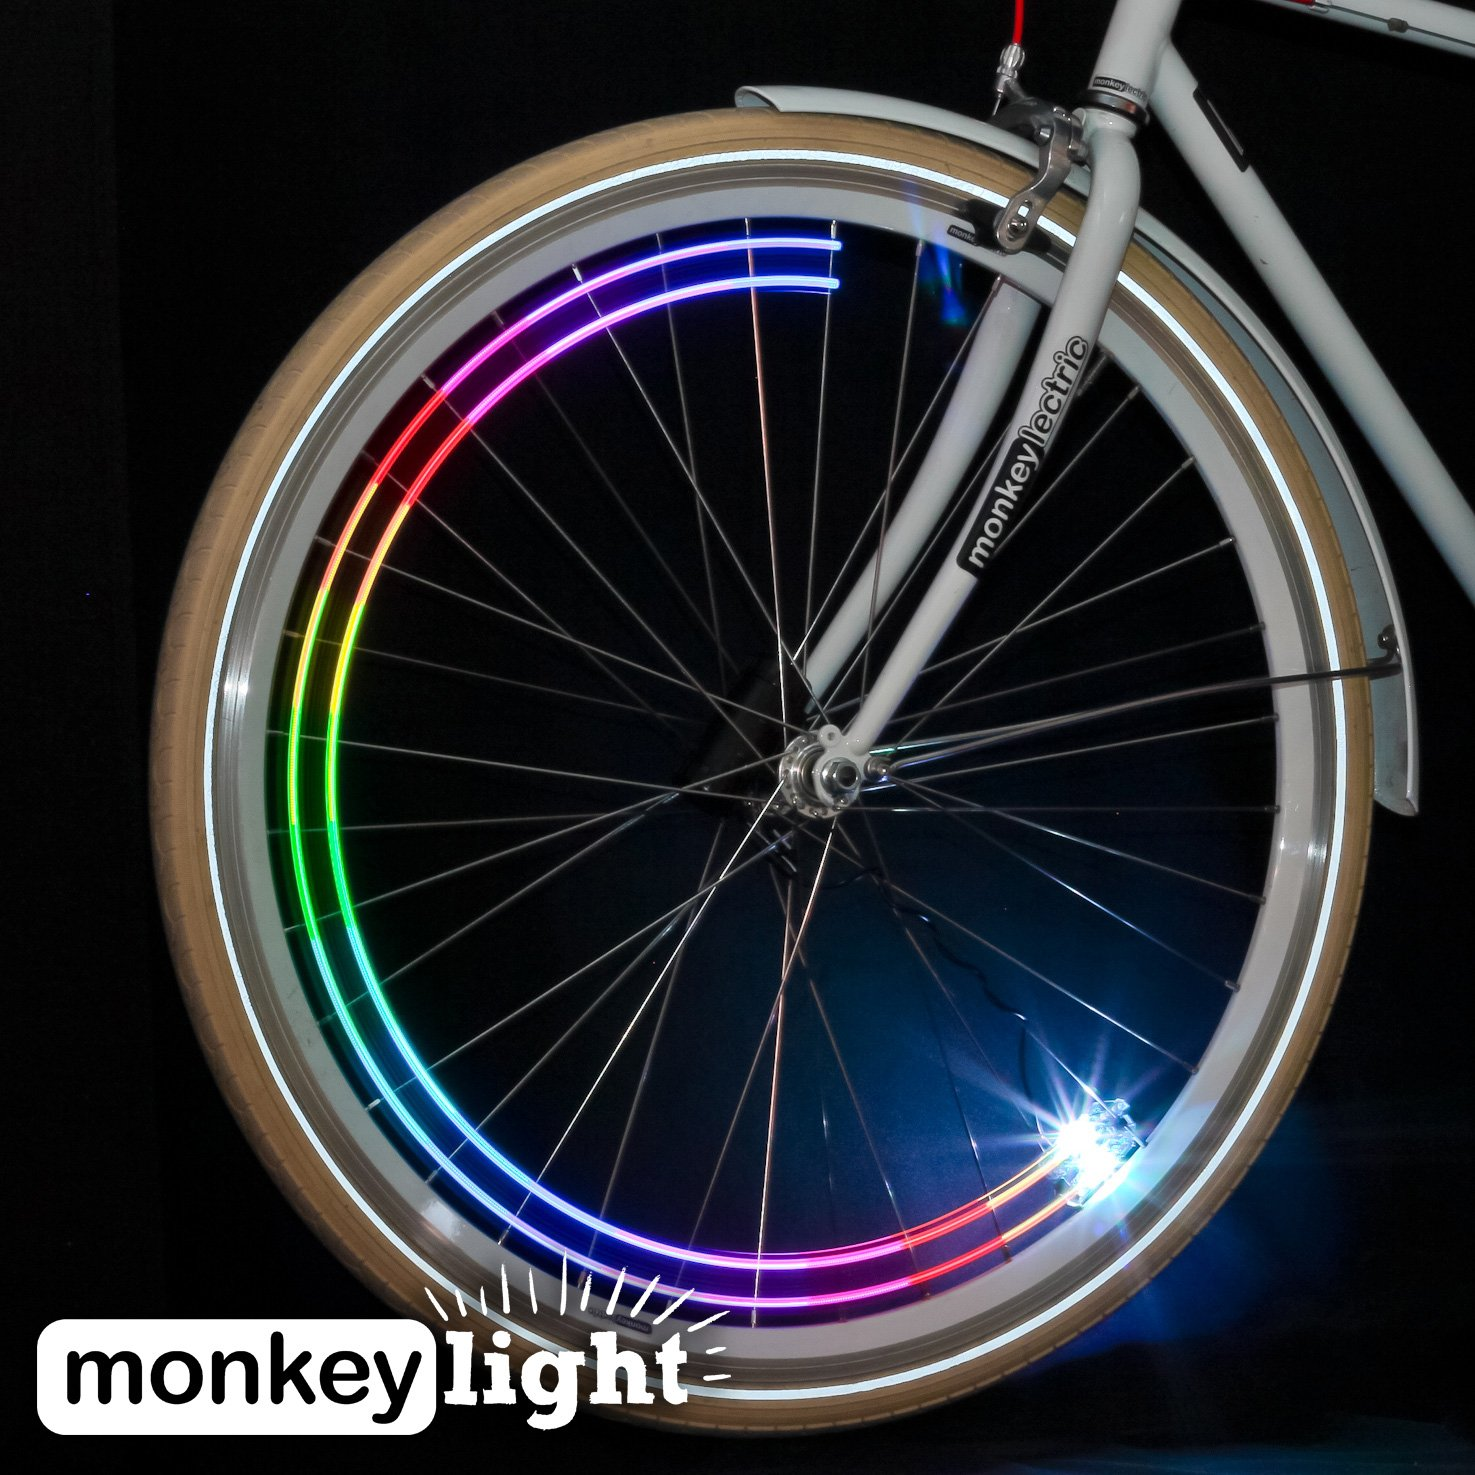 Monkey Light M204 - 40 Lumen, 4 Ultrabright full-color LED Bike Wheel Light - Waterproof ultra-durable